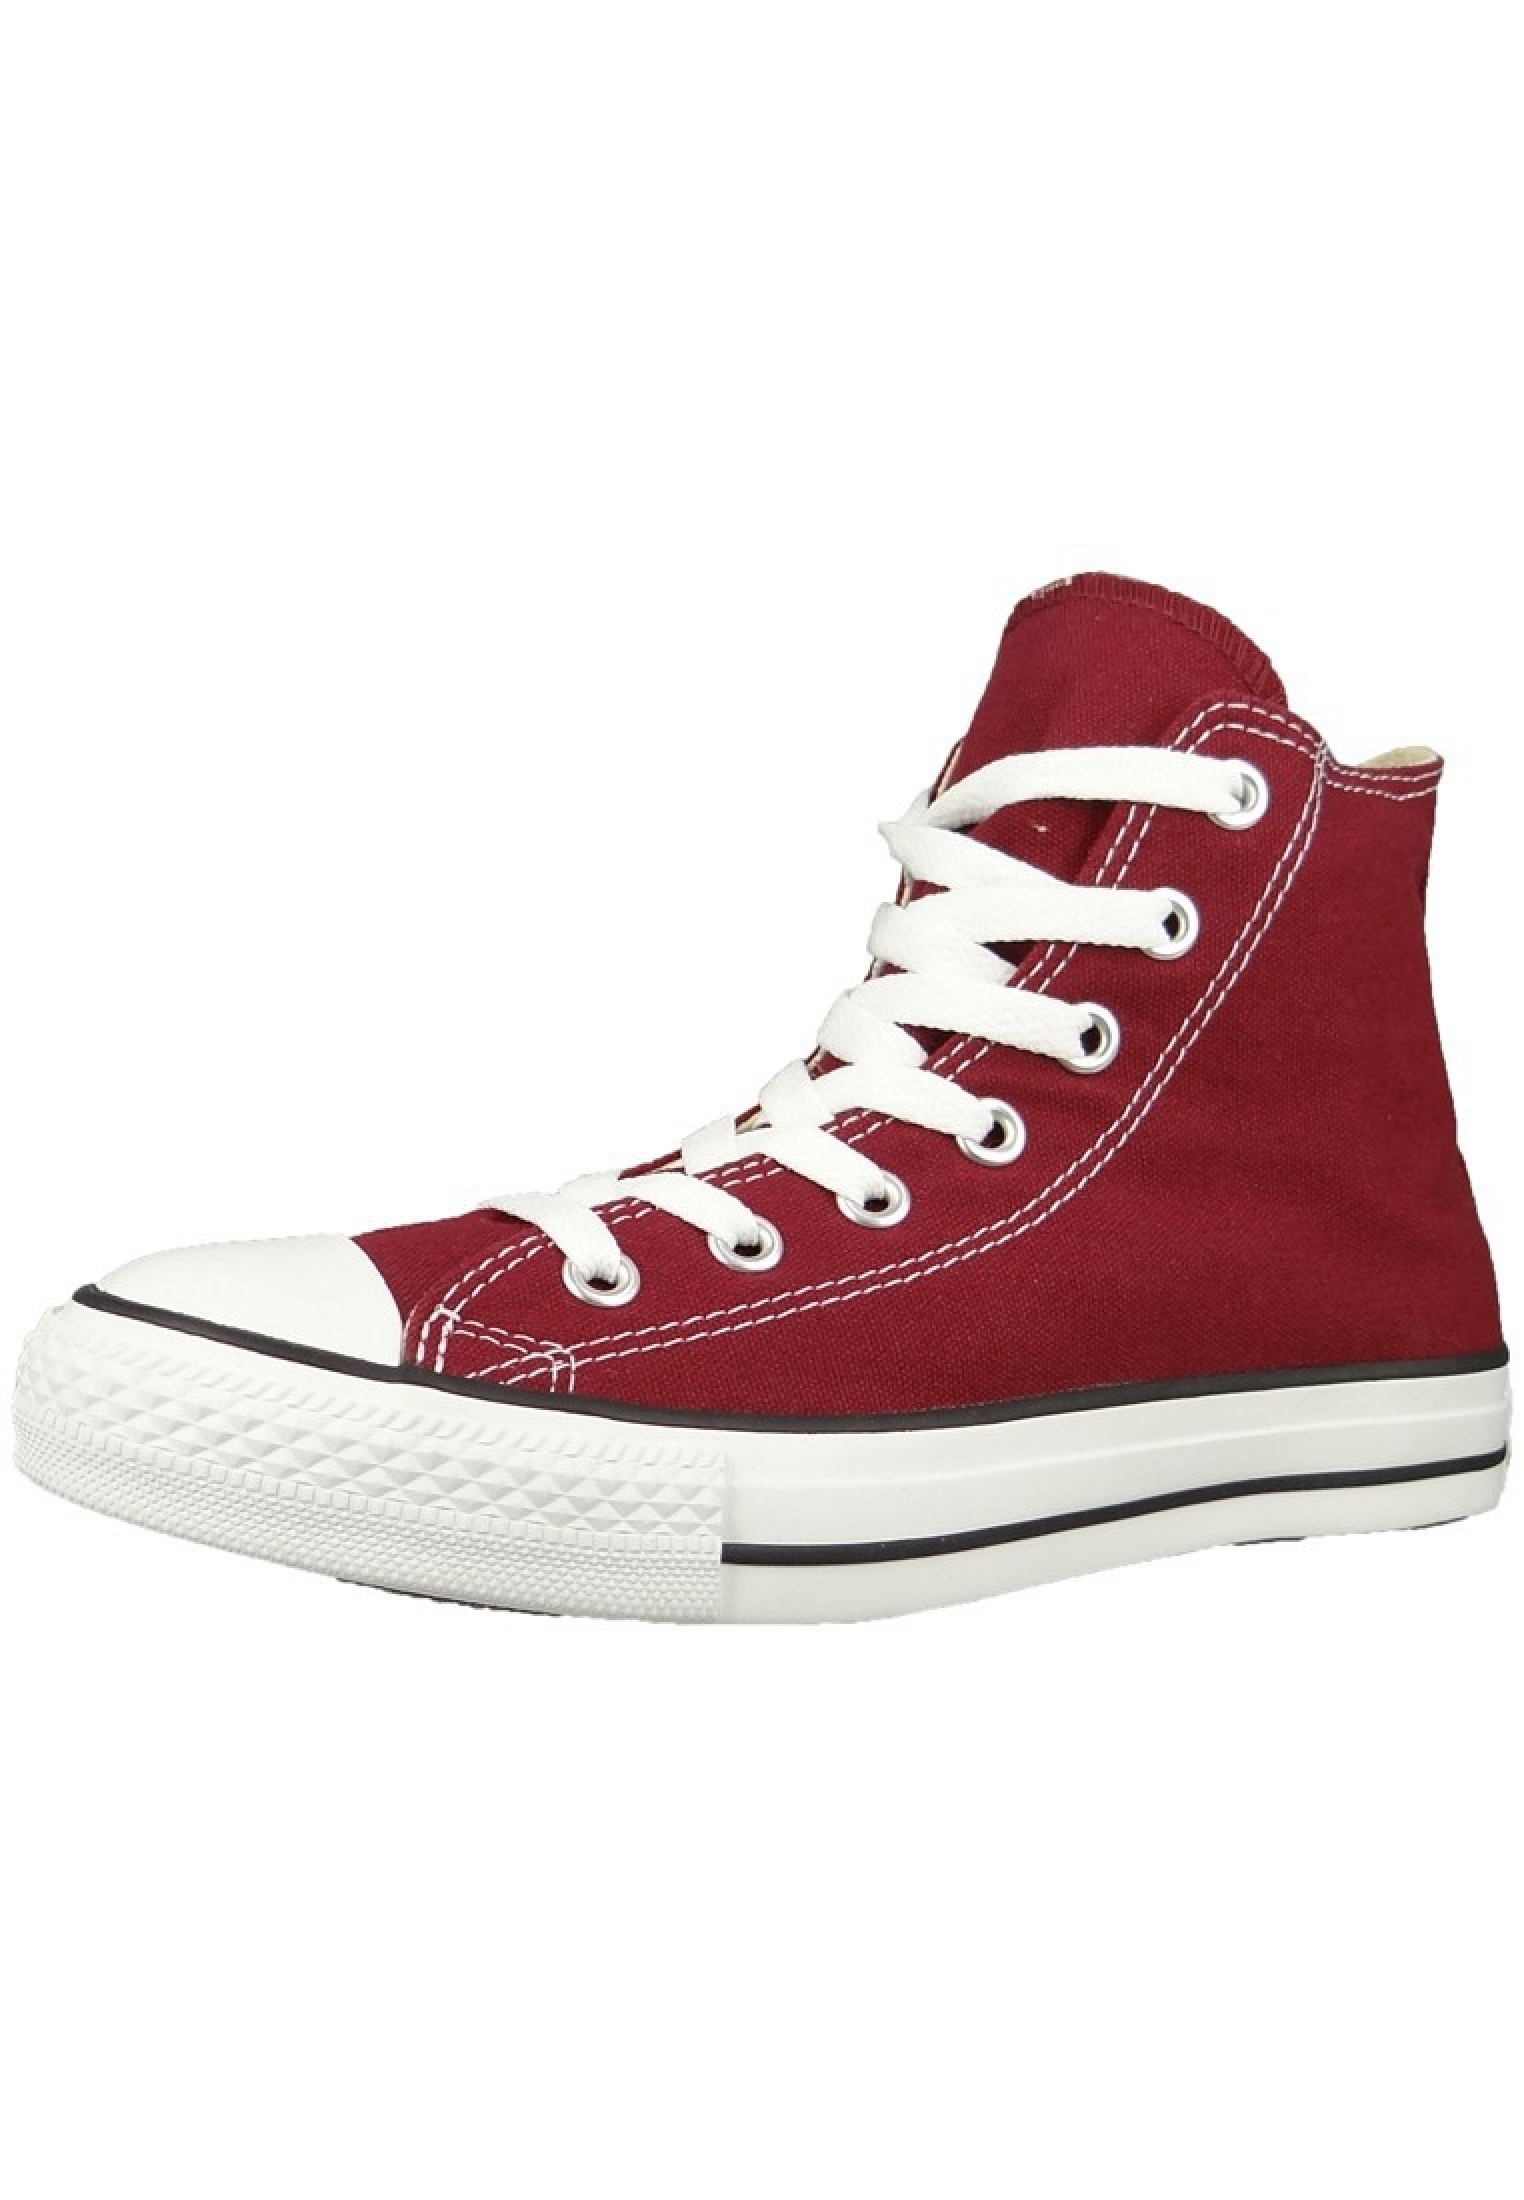 Converse Chucks Weinrot M9613C Maroon CT AS HI